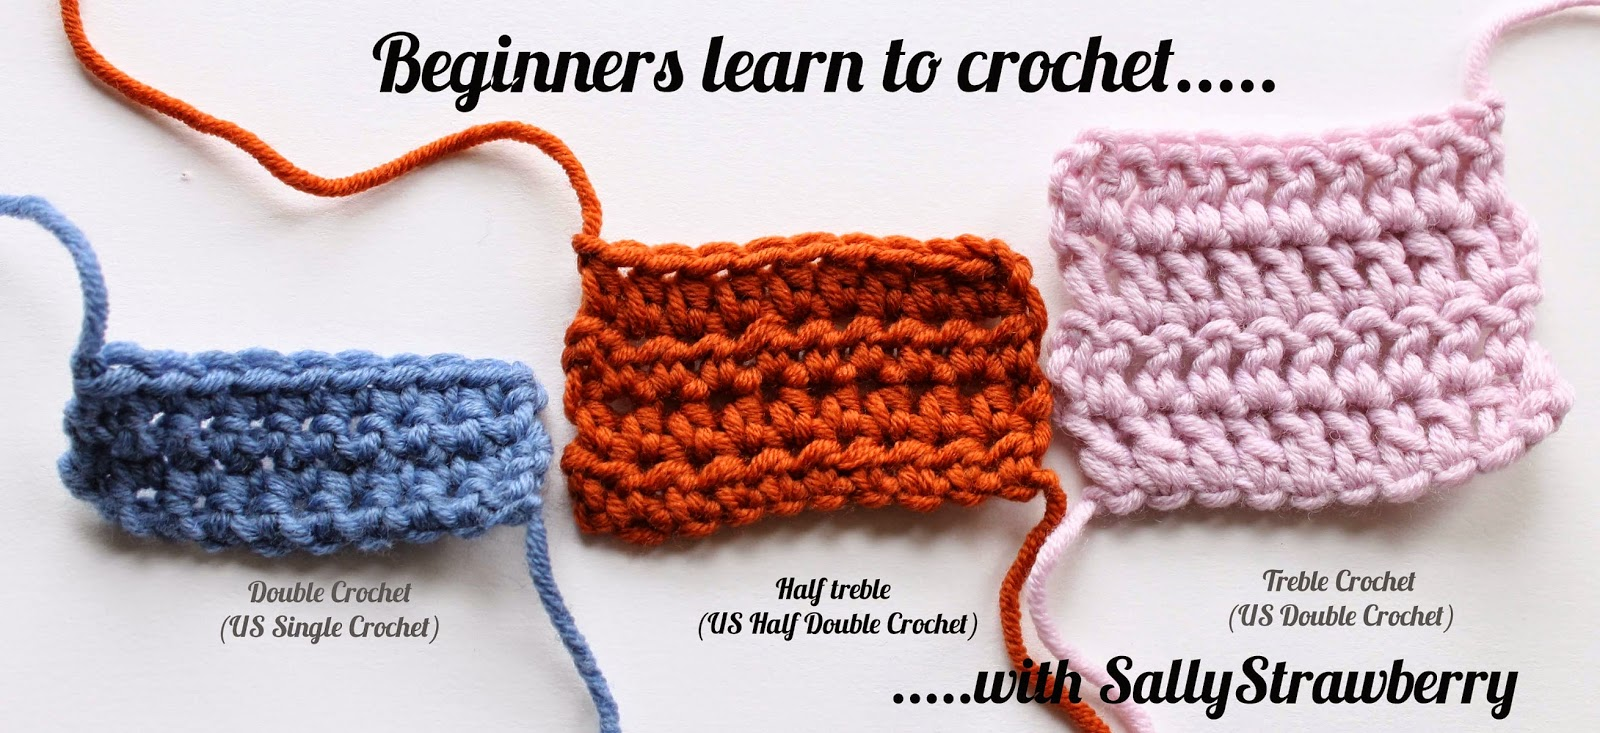 Crochet Stitches Uk Half Treble : SallyStrawberry: Beginners learn to crochet: Half-treble crochet